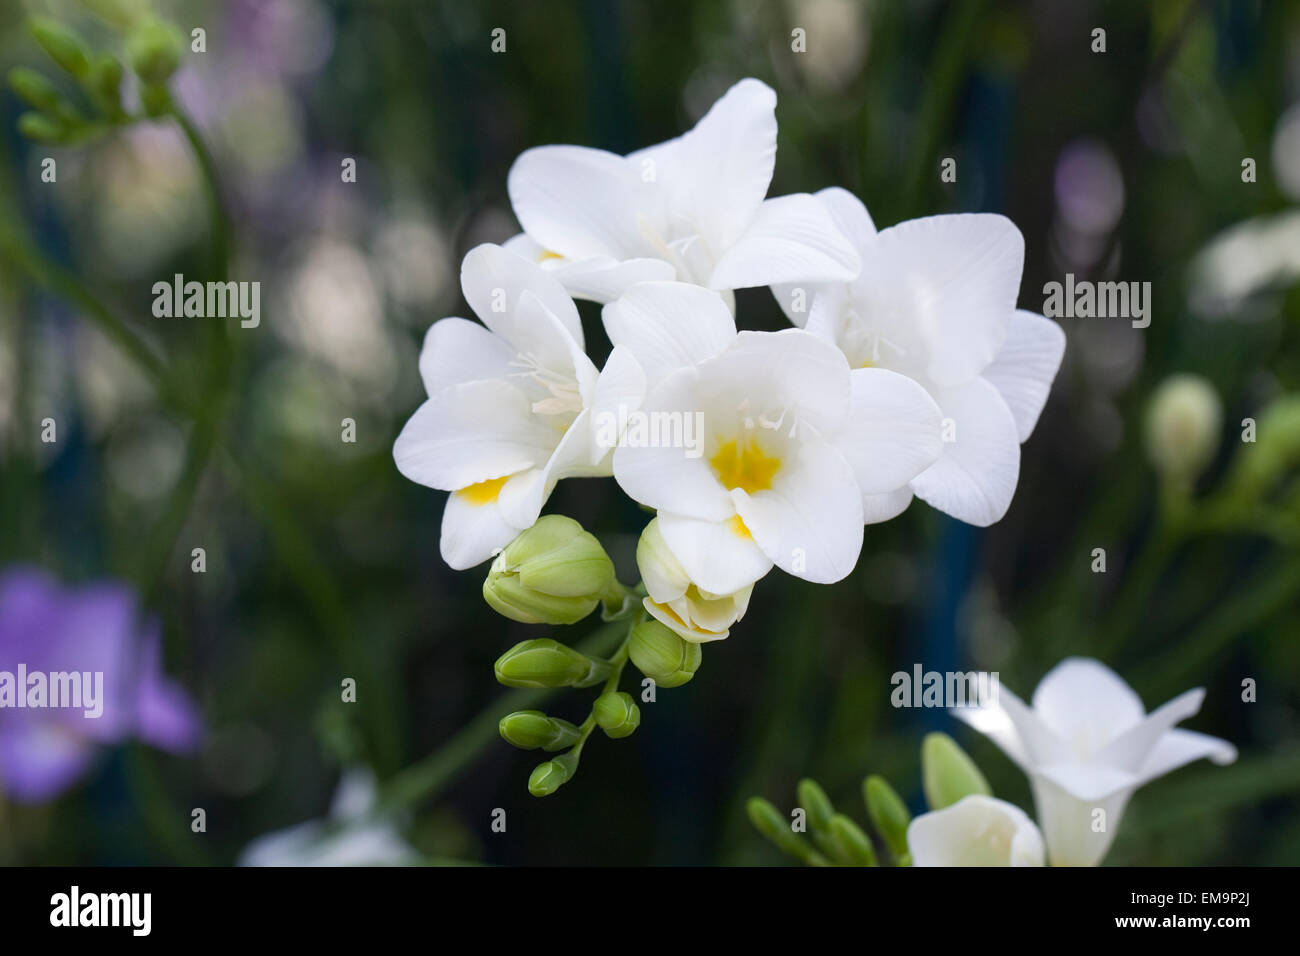 White freesia flower growing in a protected environment stock photo white freesia flower growing in a protected environment mightylinksfo